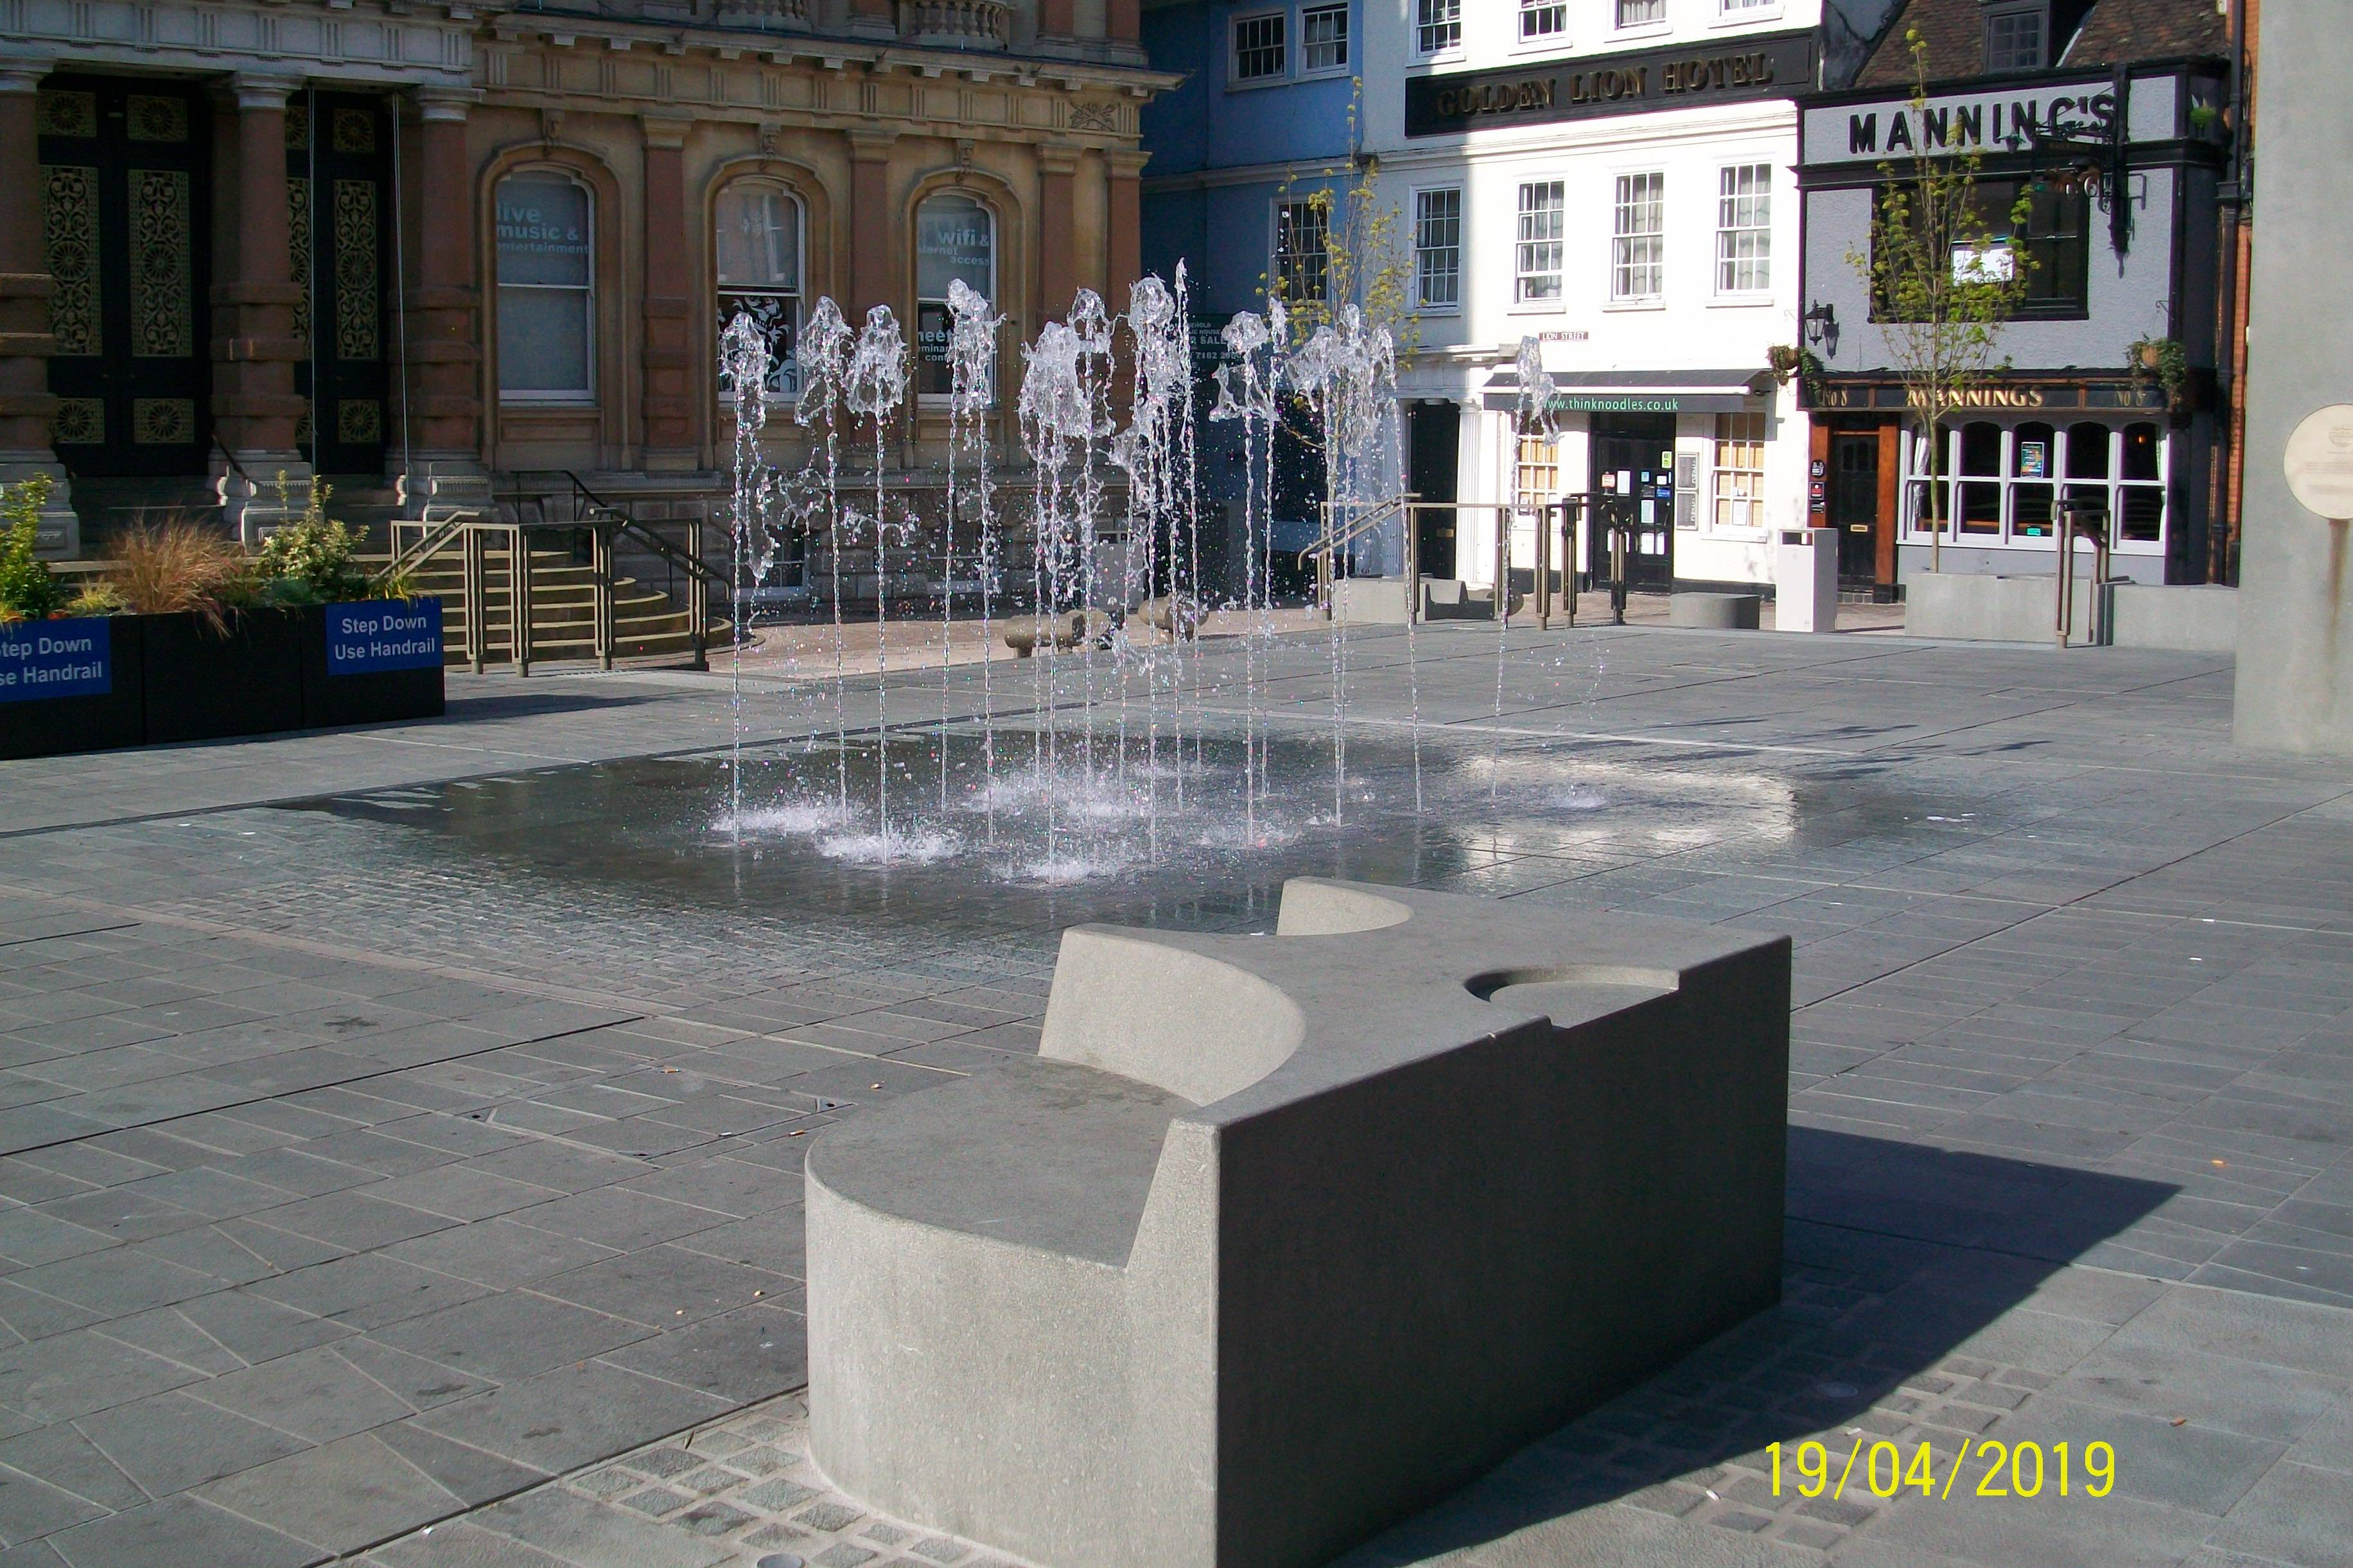 Cornhill - New Fountains Outside Town Hall